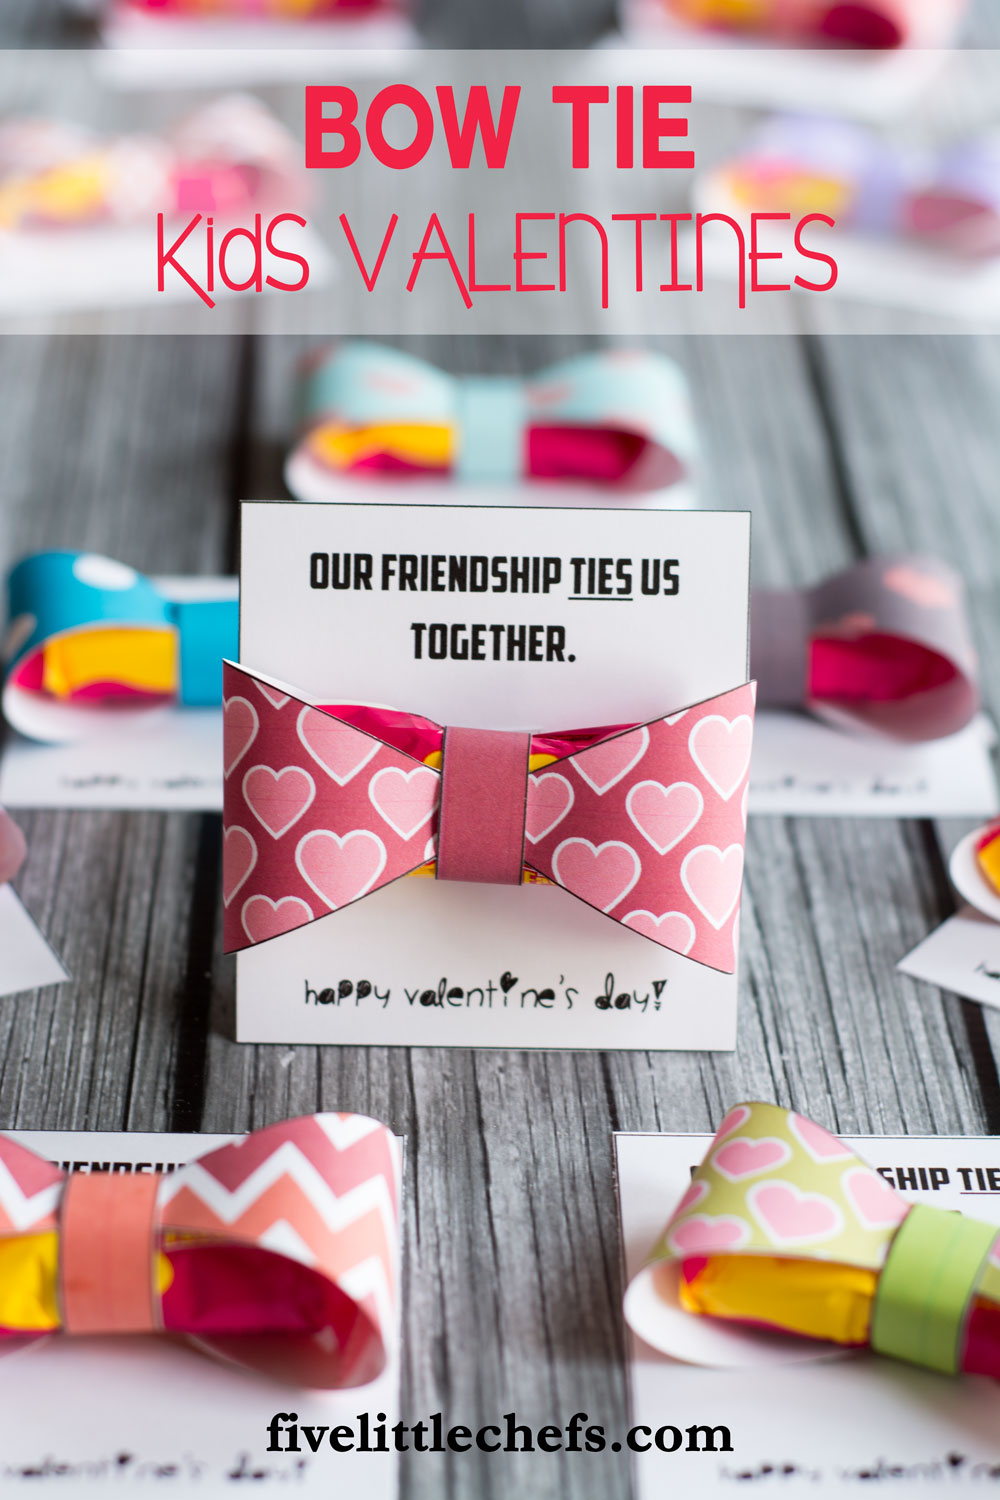 Bow ties classroom kids valentines ideas are cute, cheap and easy. Use the printables then add a two pack starburst candy. A great valentine's day idea for friends. fivelittlechefs.com